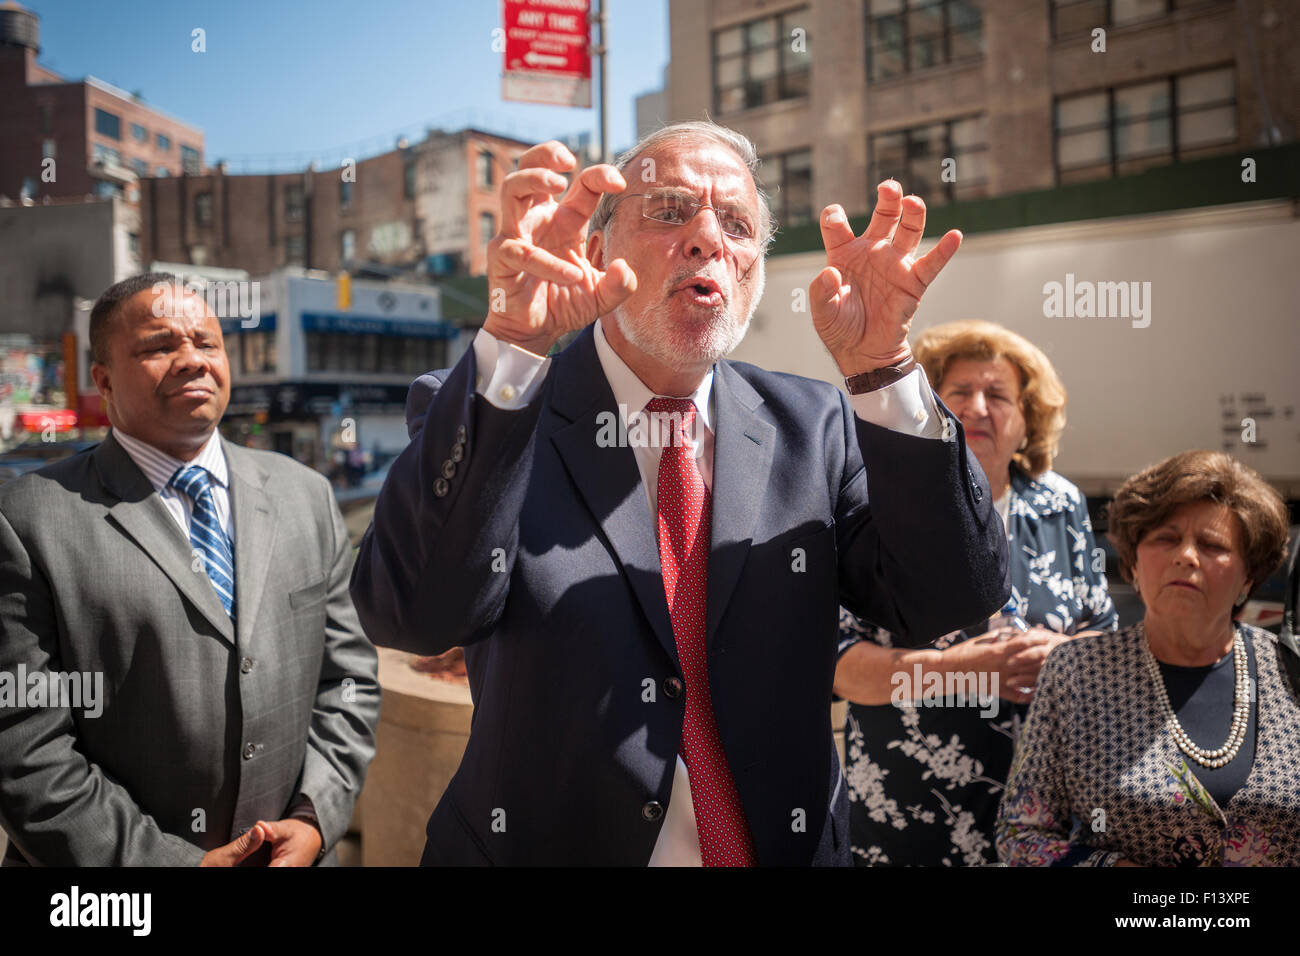 New York, USA. 26th Aug, 2015. NYS Assemblyman Dov Hikind, center, surrounded by Holocaust survivors and elected Stock Photo